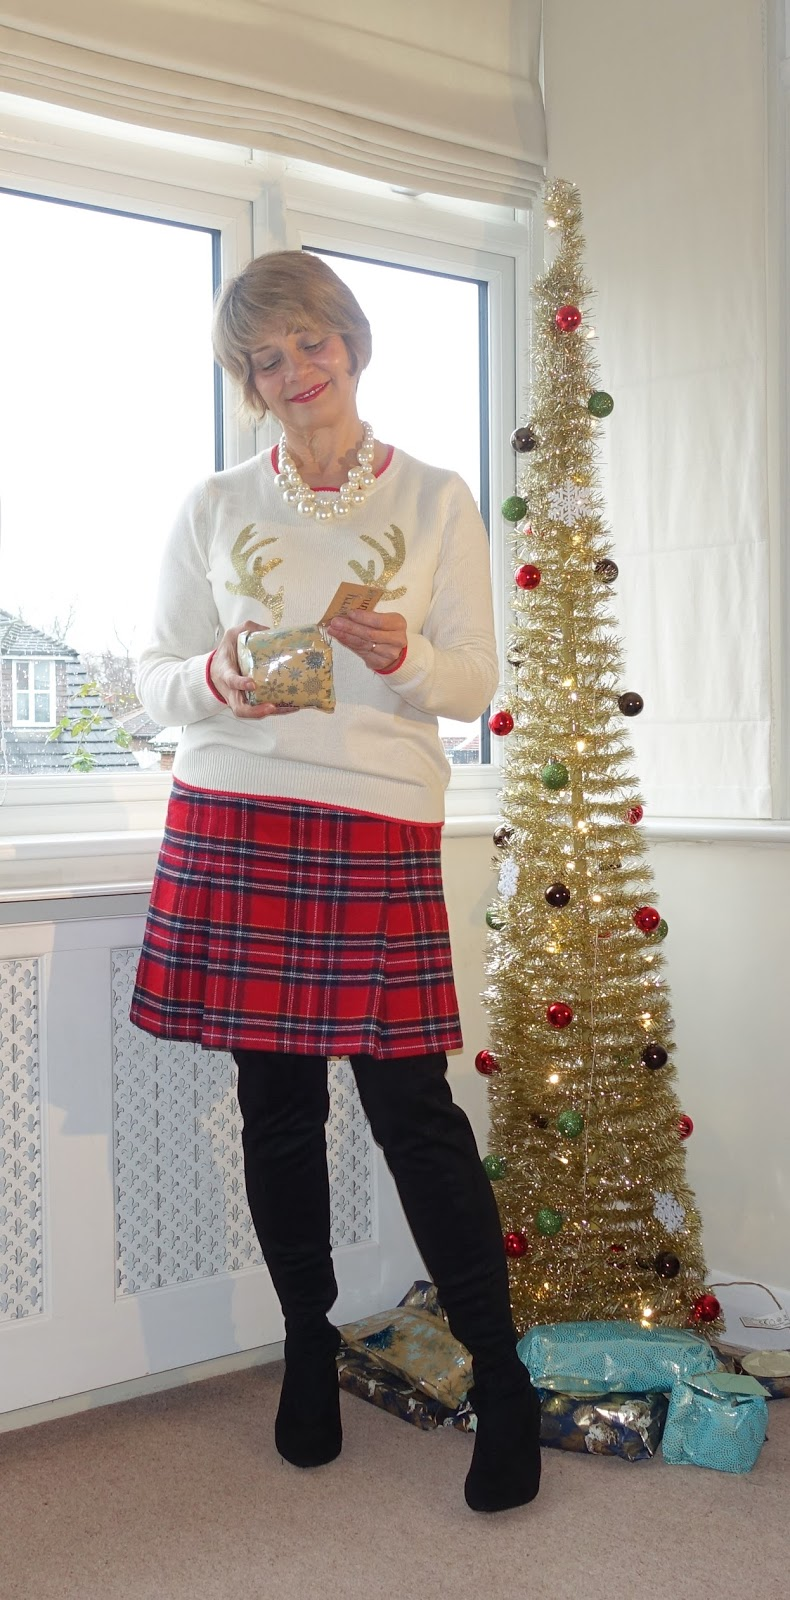 Image showing an over 50s fashion blogger by a Christmas tree in a Christmas jumper and red tartan skirt